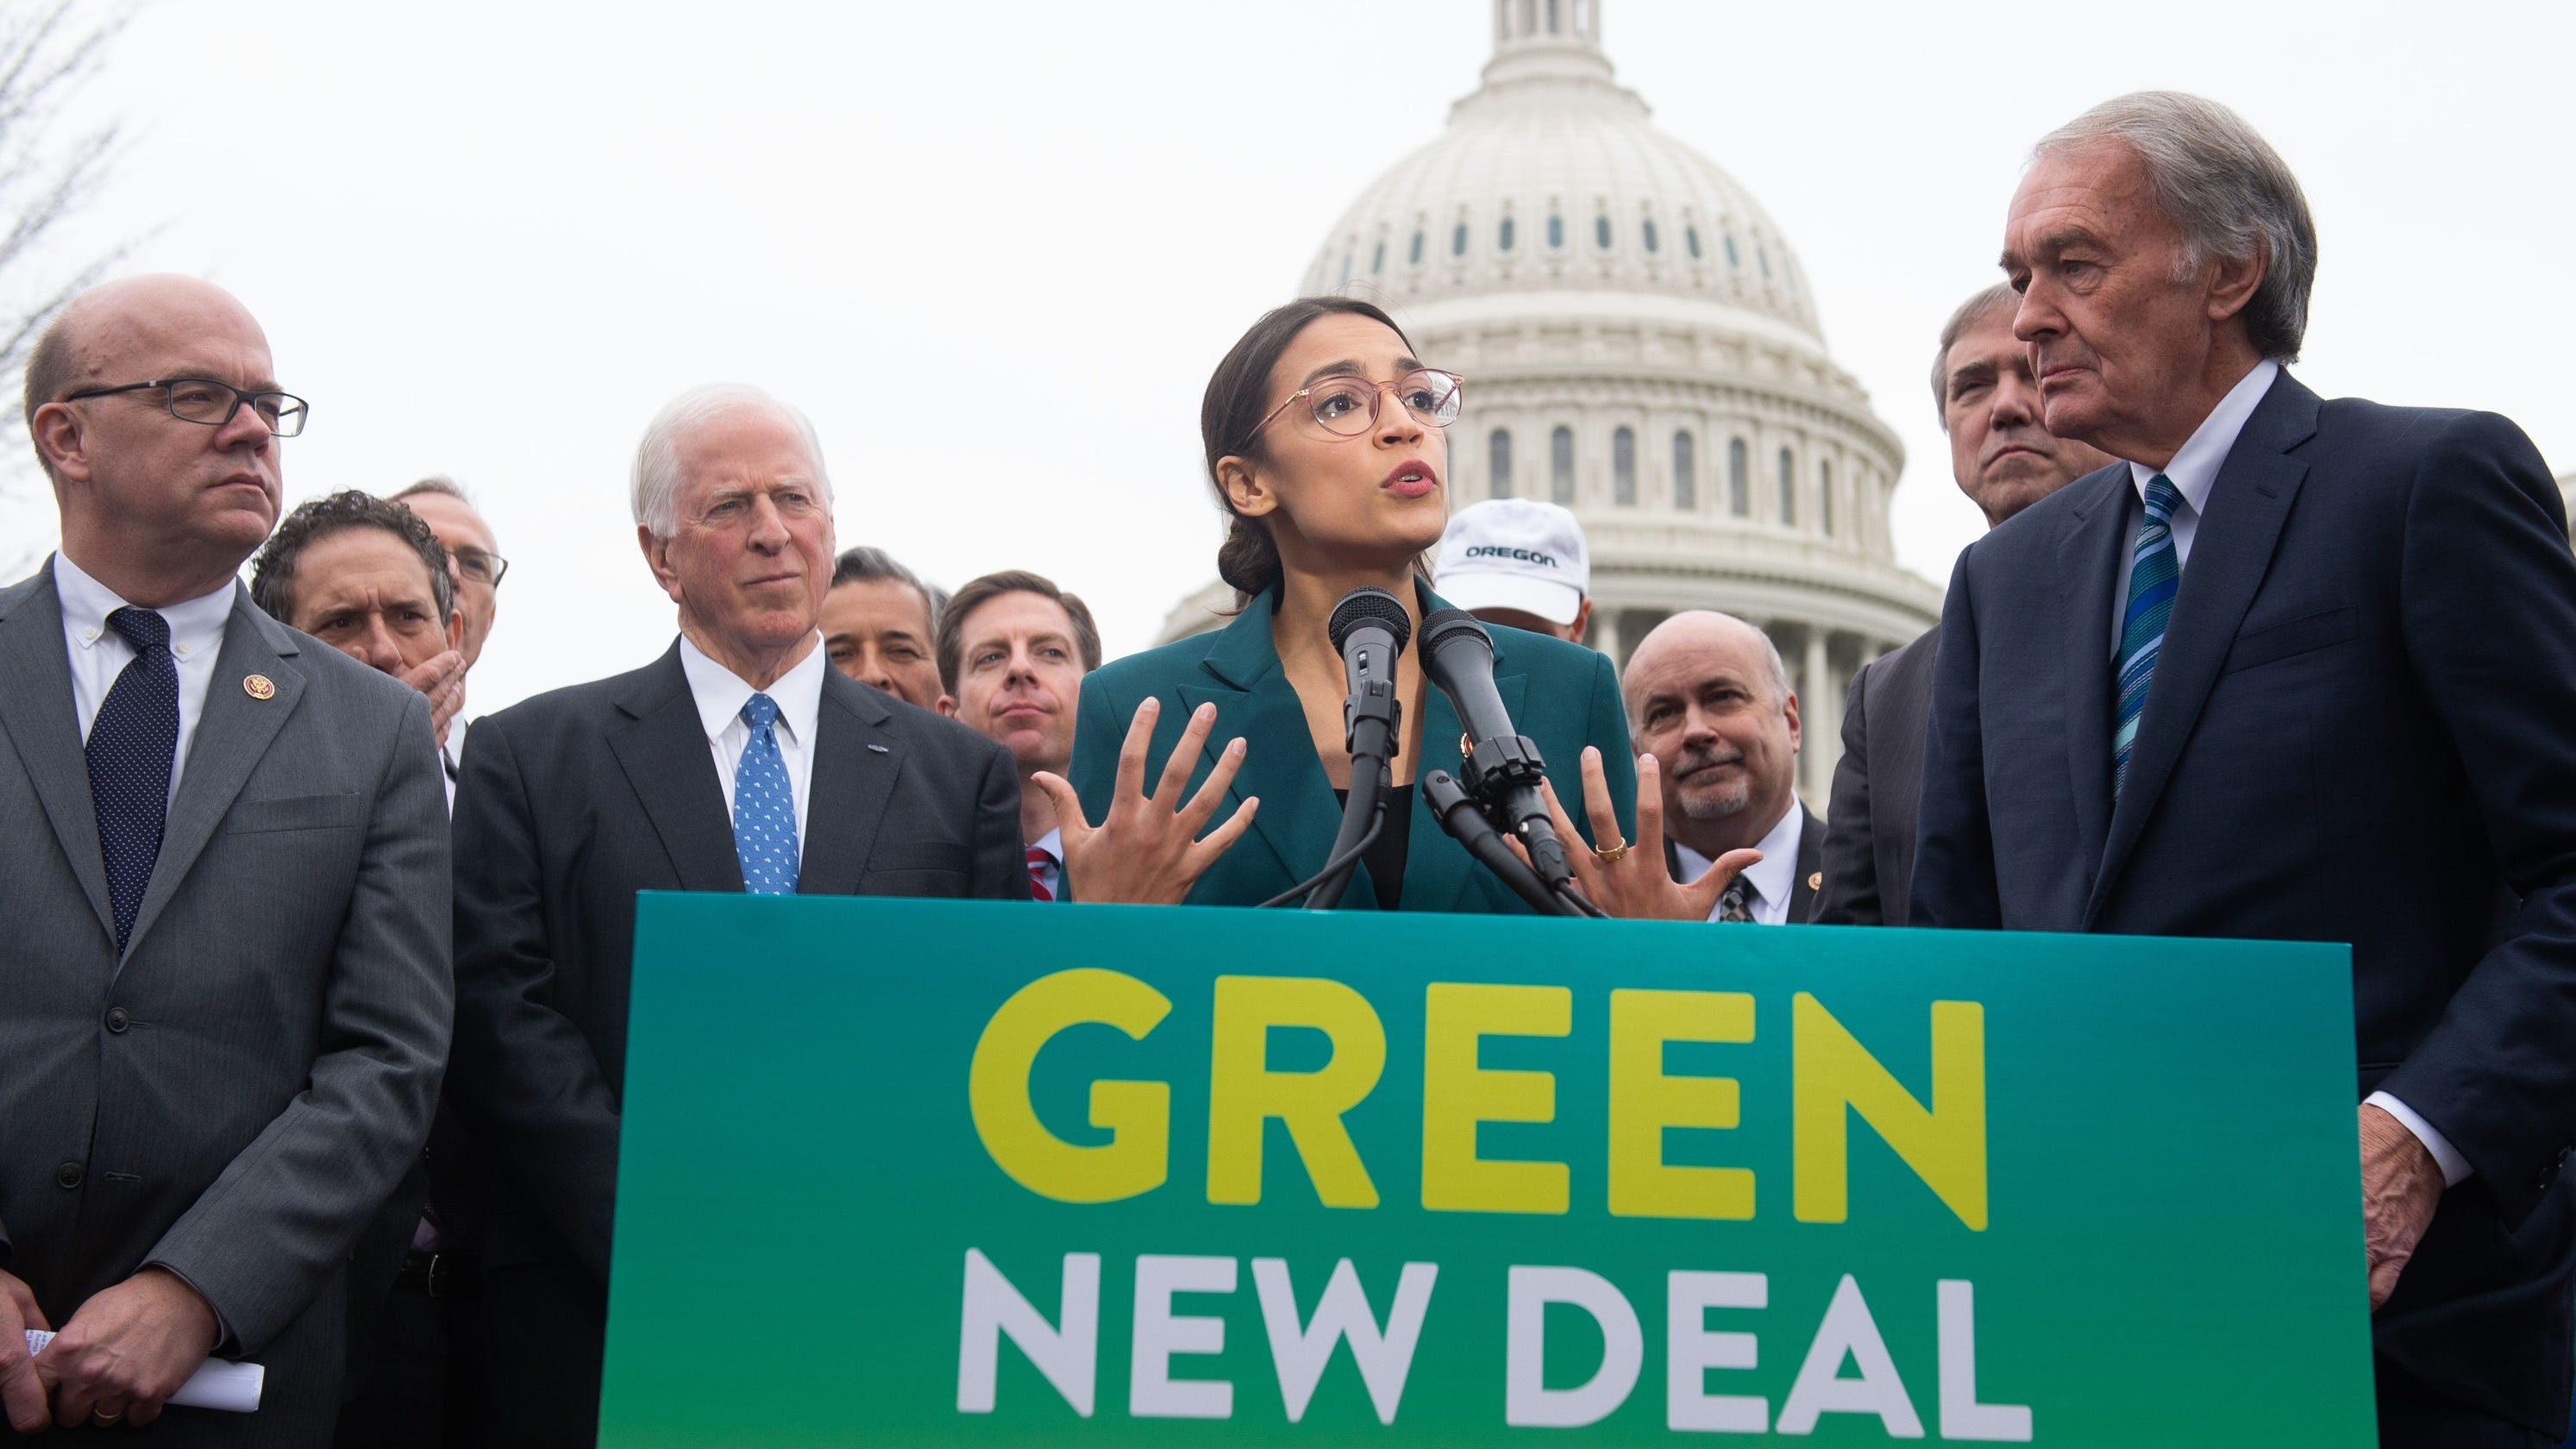 Green New Deal, backed by Ocasio-Cortez, to get its first vote on Capitol Hill Tuesday